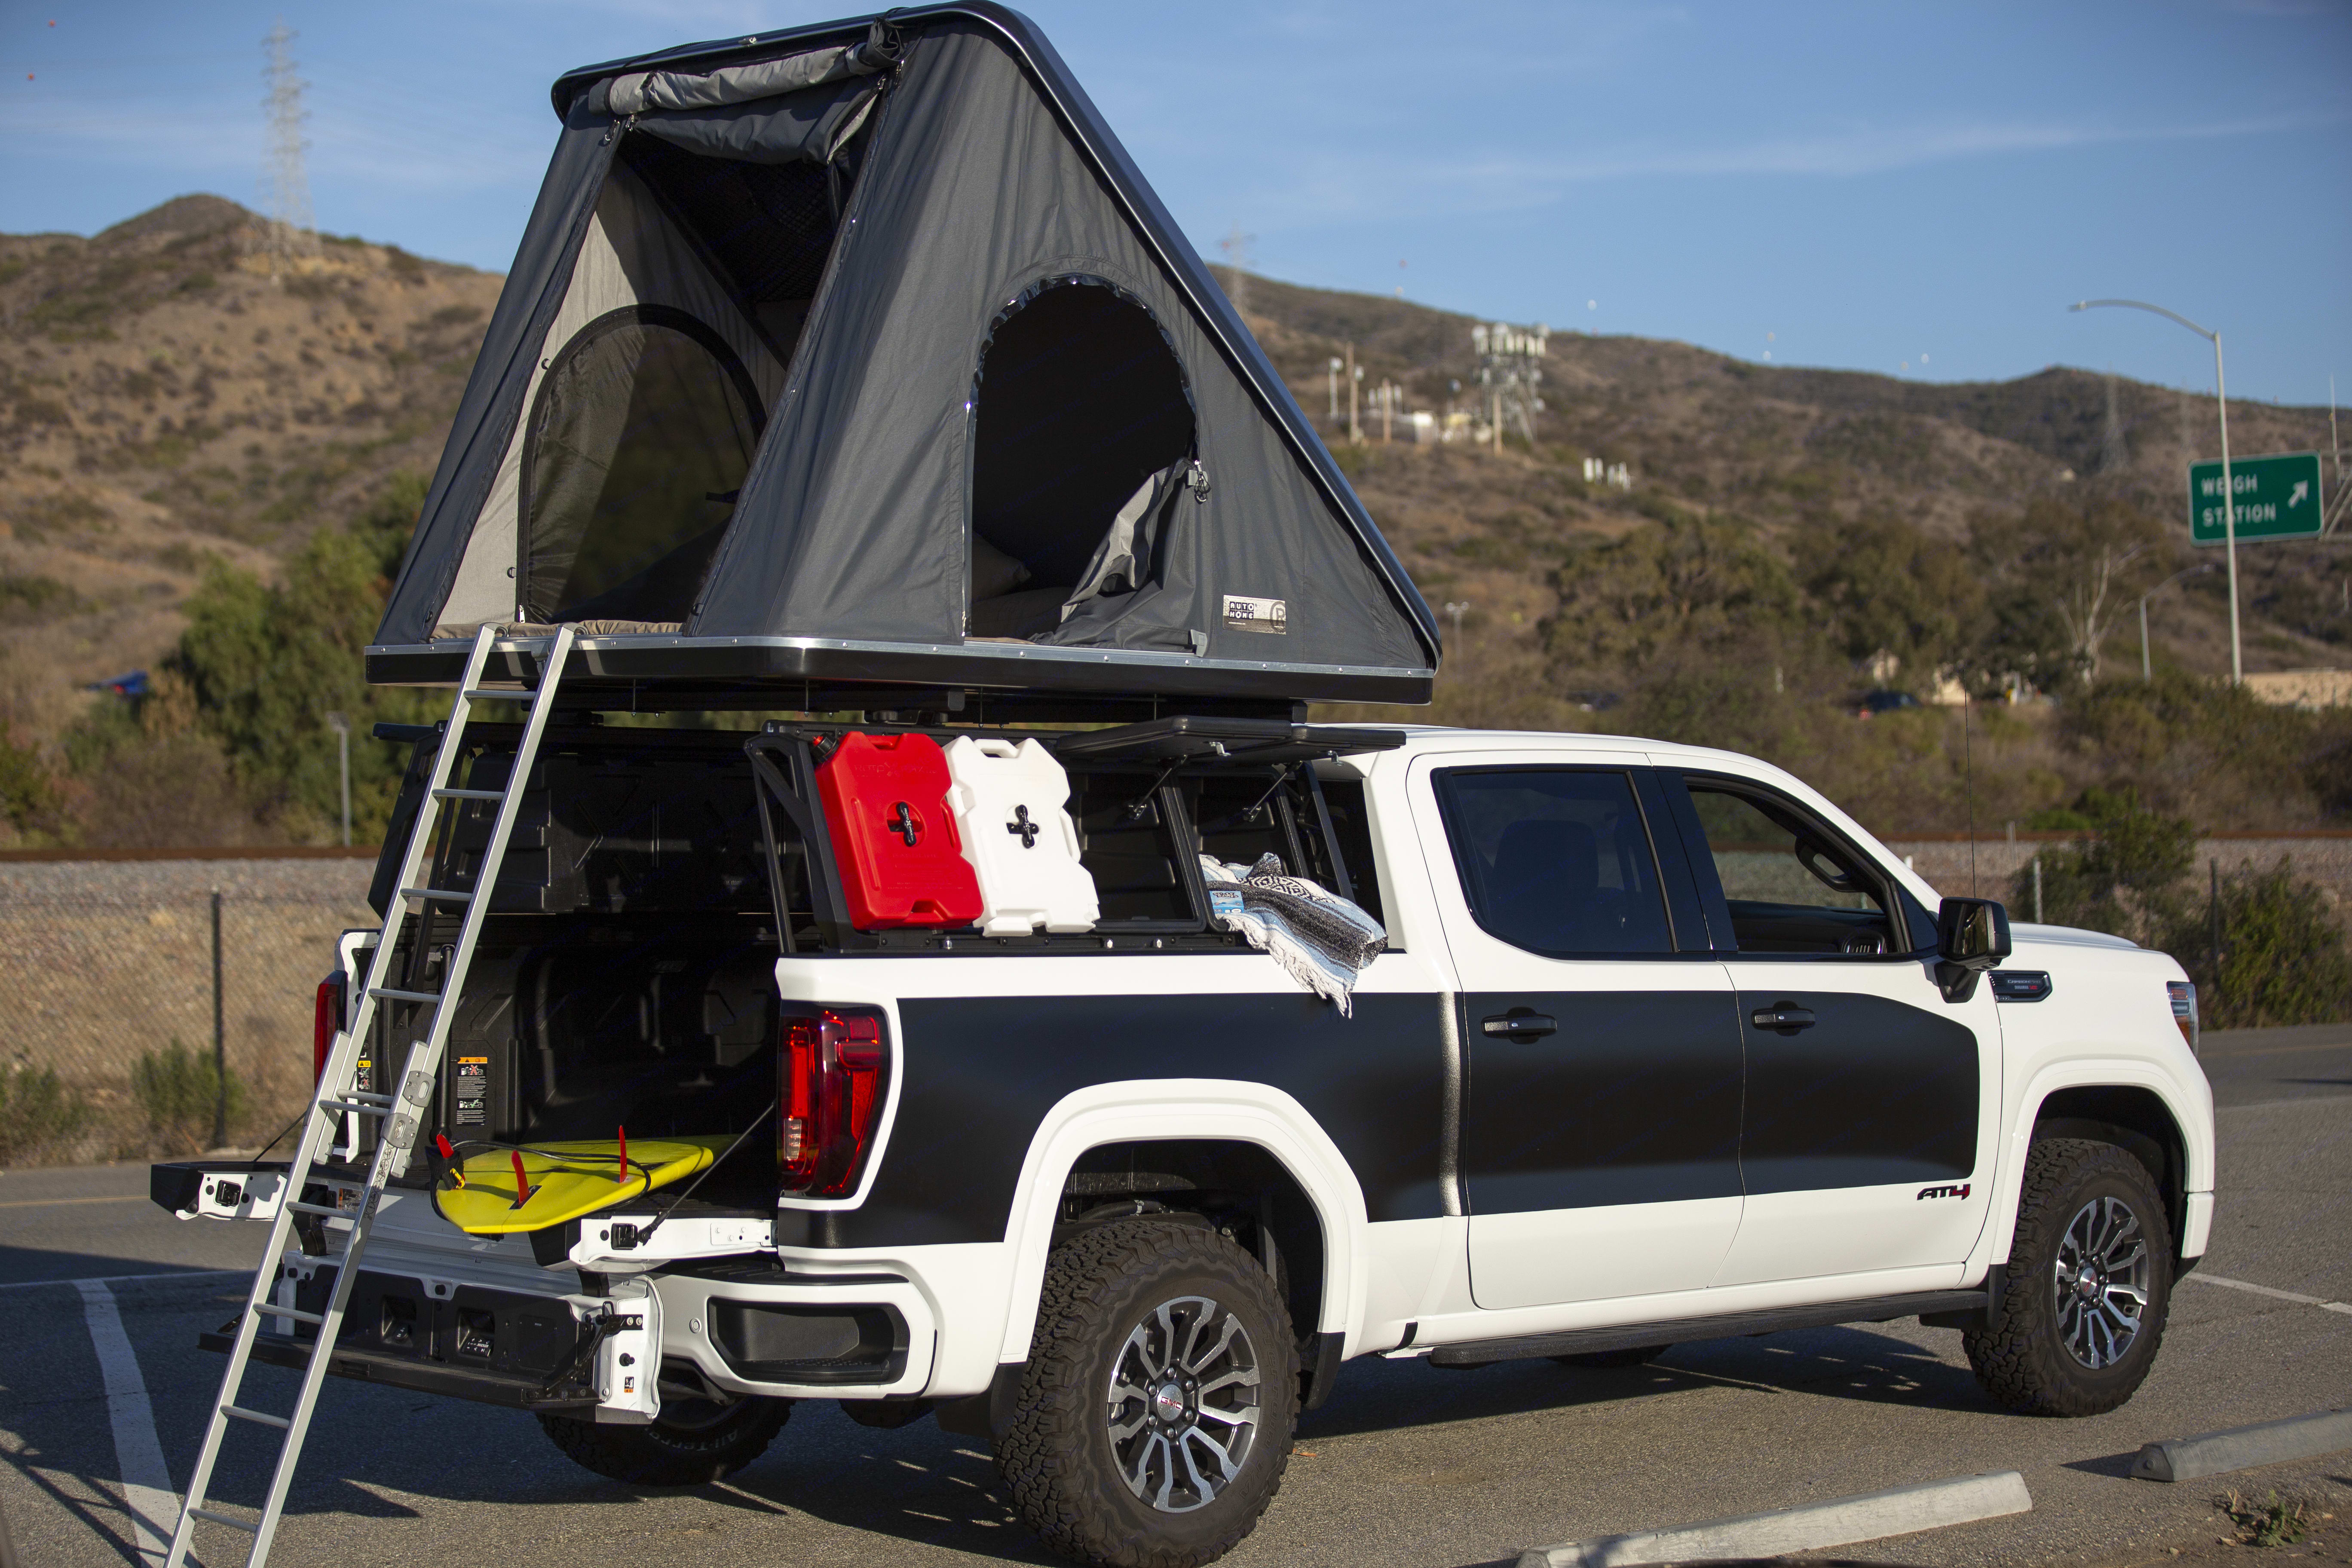 Two smaller locking storage compartments are shown open with roto-pax 2 gal. gas and water containers at back of rack. . GMC Sierra 1500 AT4 Duramax Diesel 2021